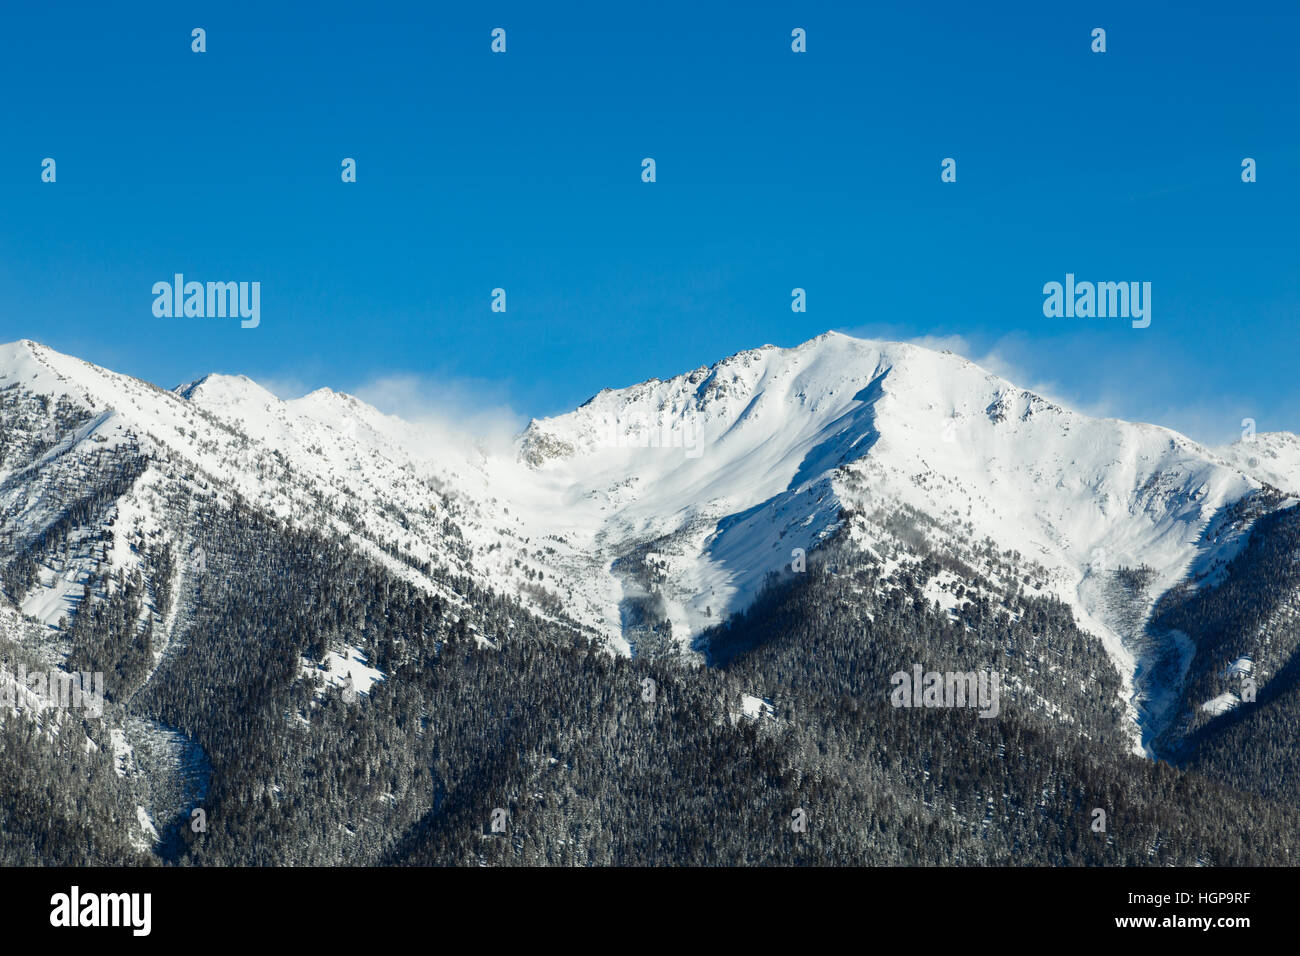 Snow billowing off the mountain tops in the Sawtooth Mountains - Stock Image